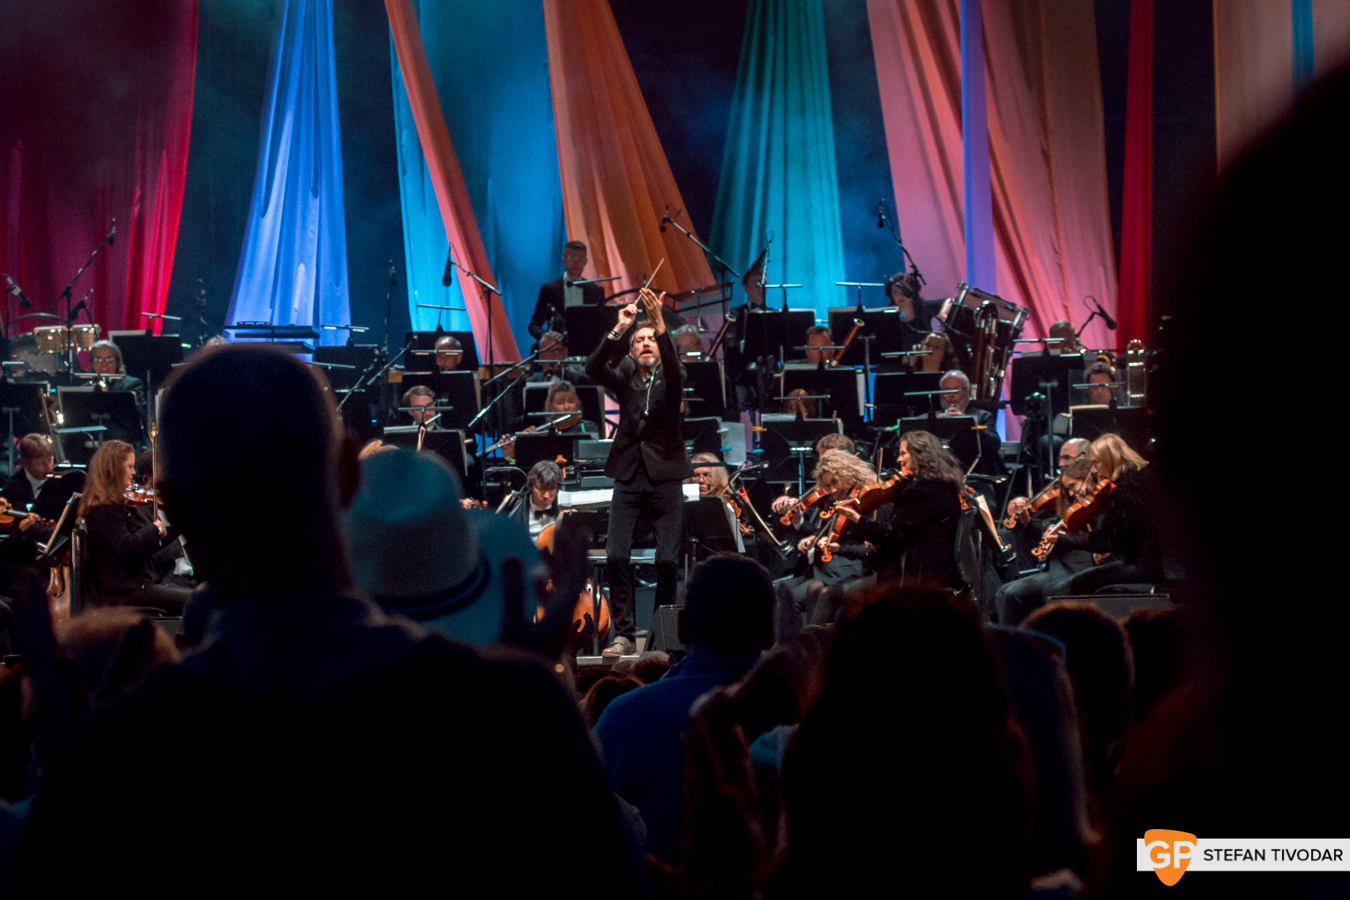 RTE Concert Orchestra Culture Night 2019 at National Museum of Ireland Tivodar 5